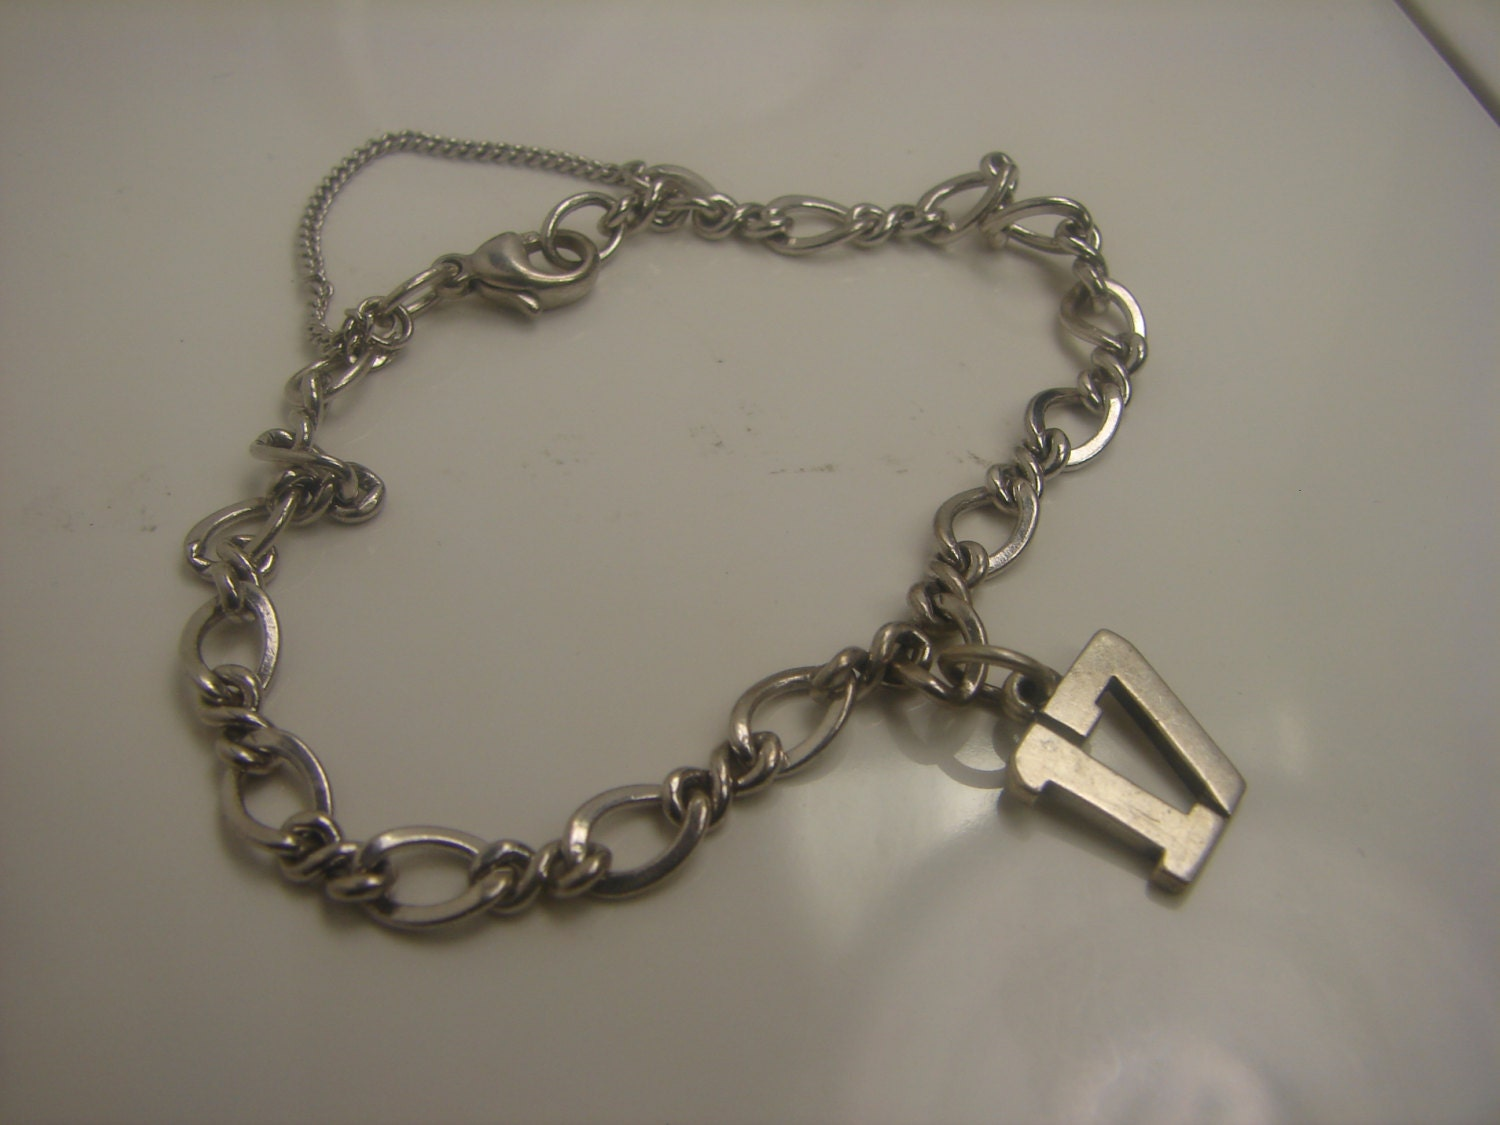 I just got it. Went to put a charm in and now the circle won't close up again. - Hi Brigid! We're sorry to hear this, please take it to your local James Avery store.